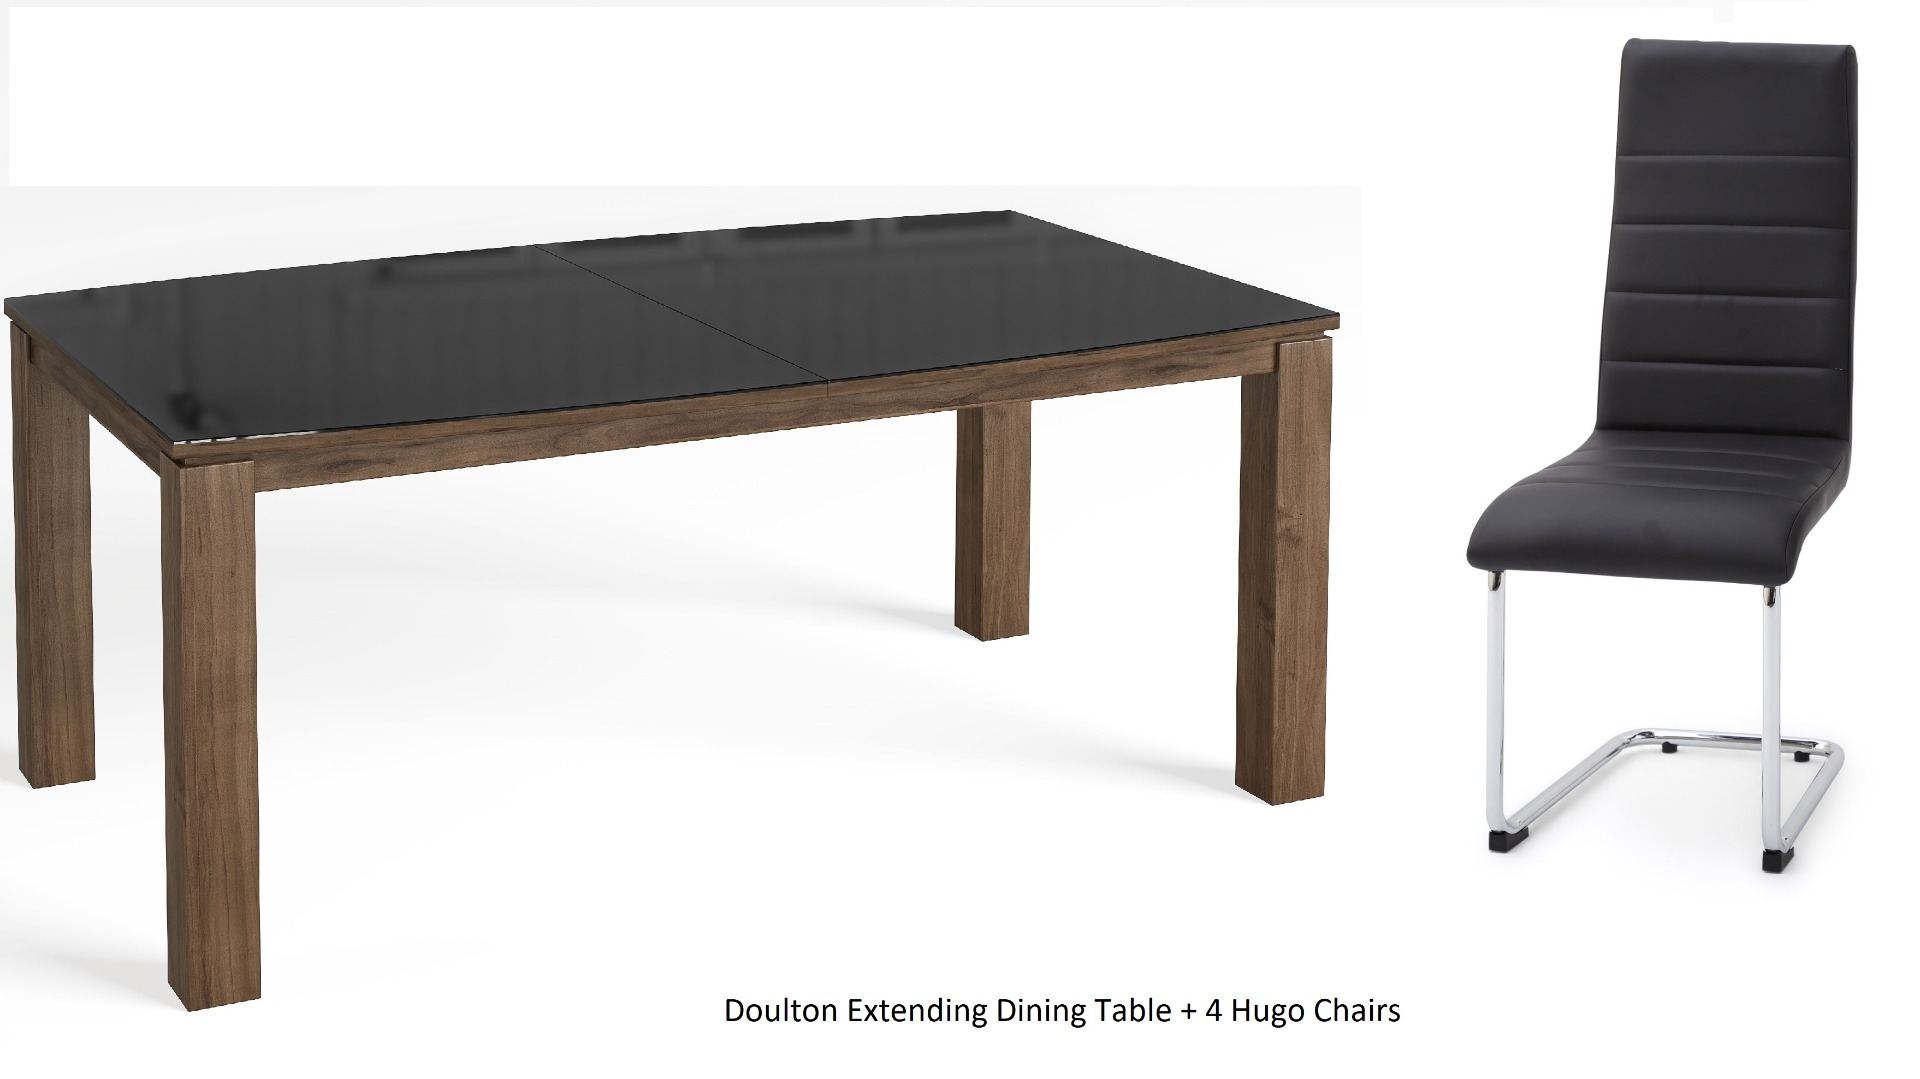 Fairmont Doulton Walnut/Black Ext. Dining Table with 4 Hugo